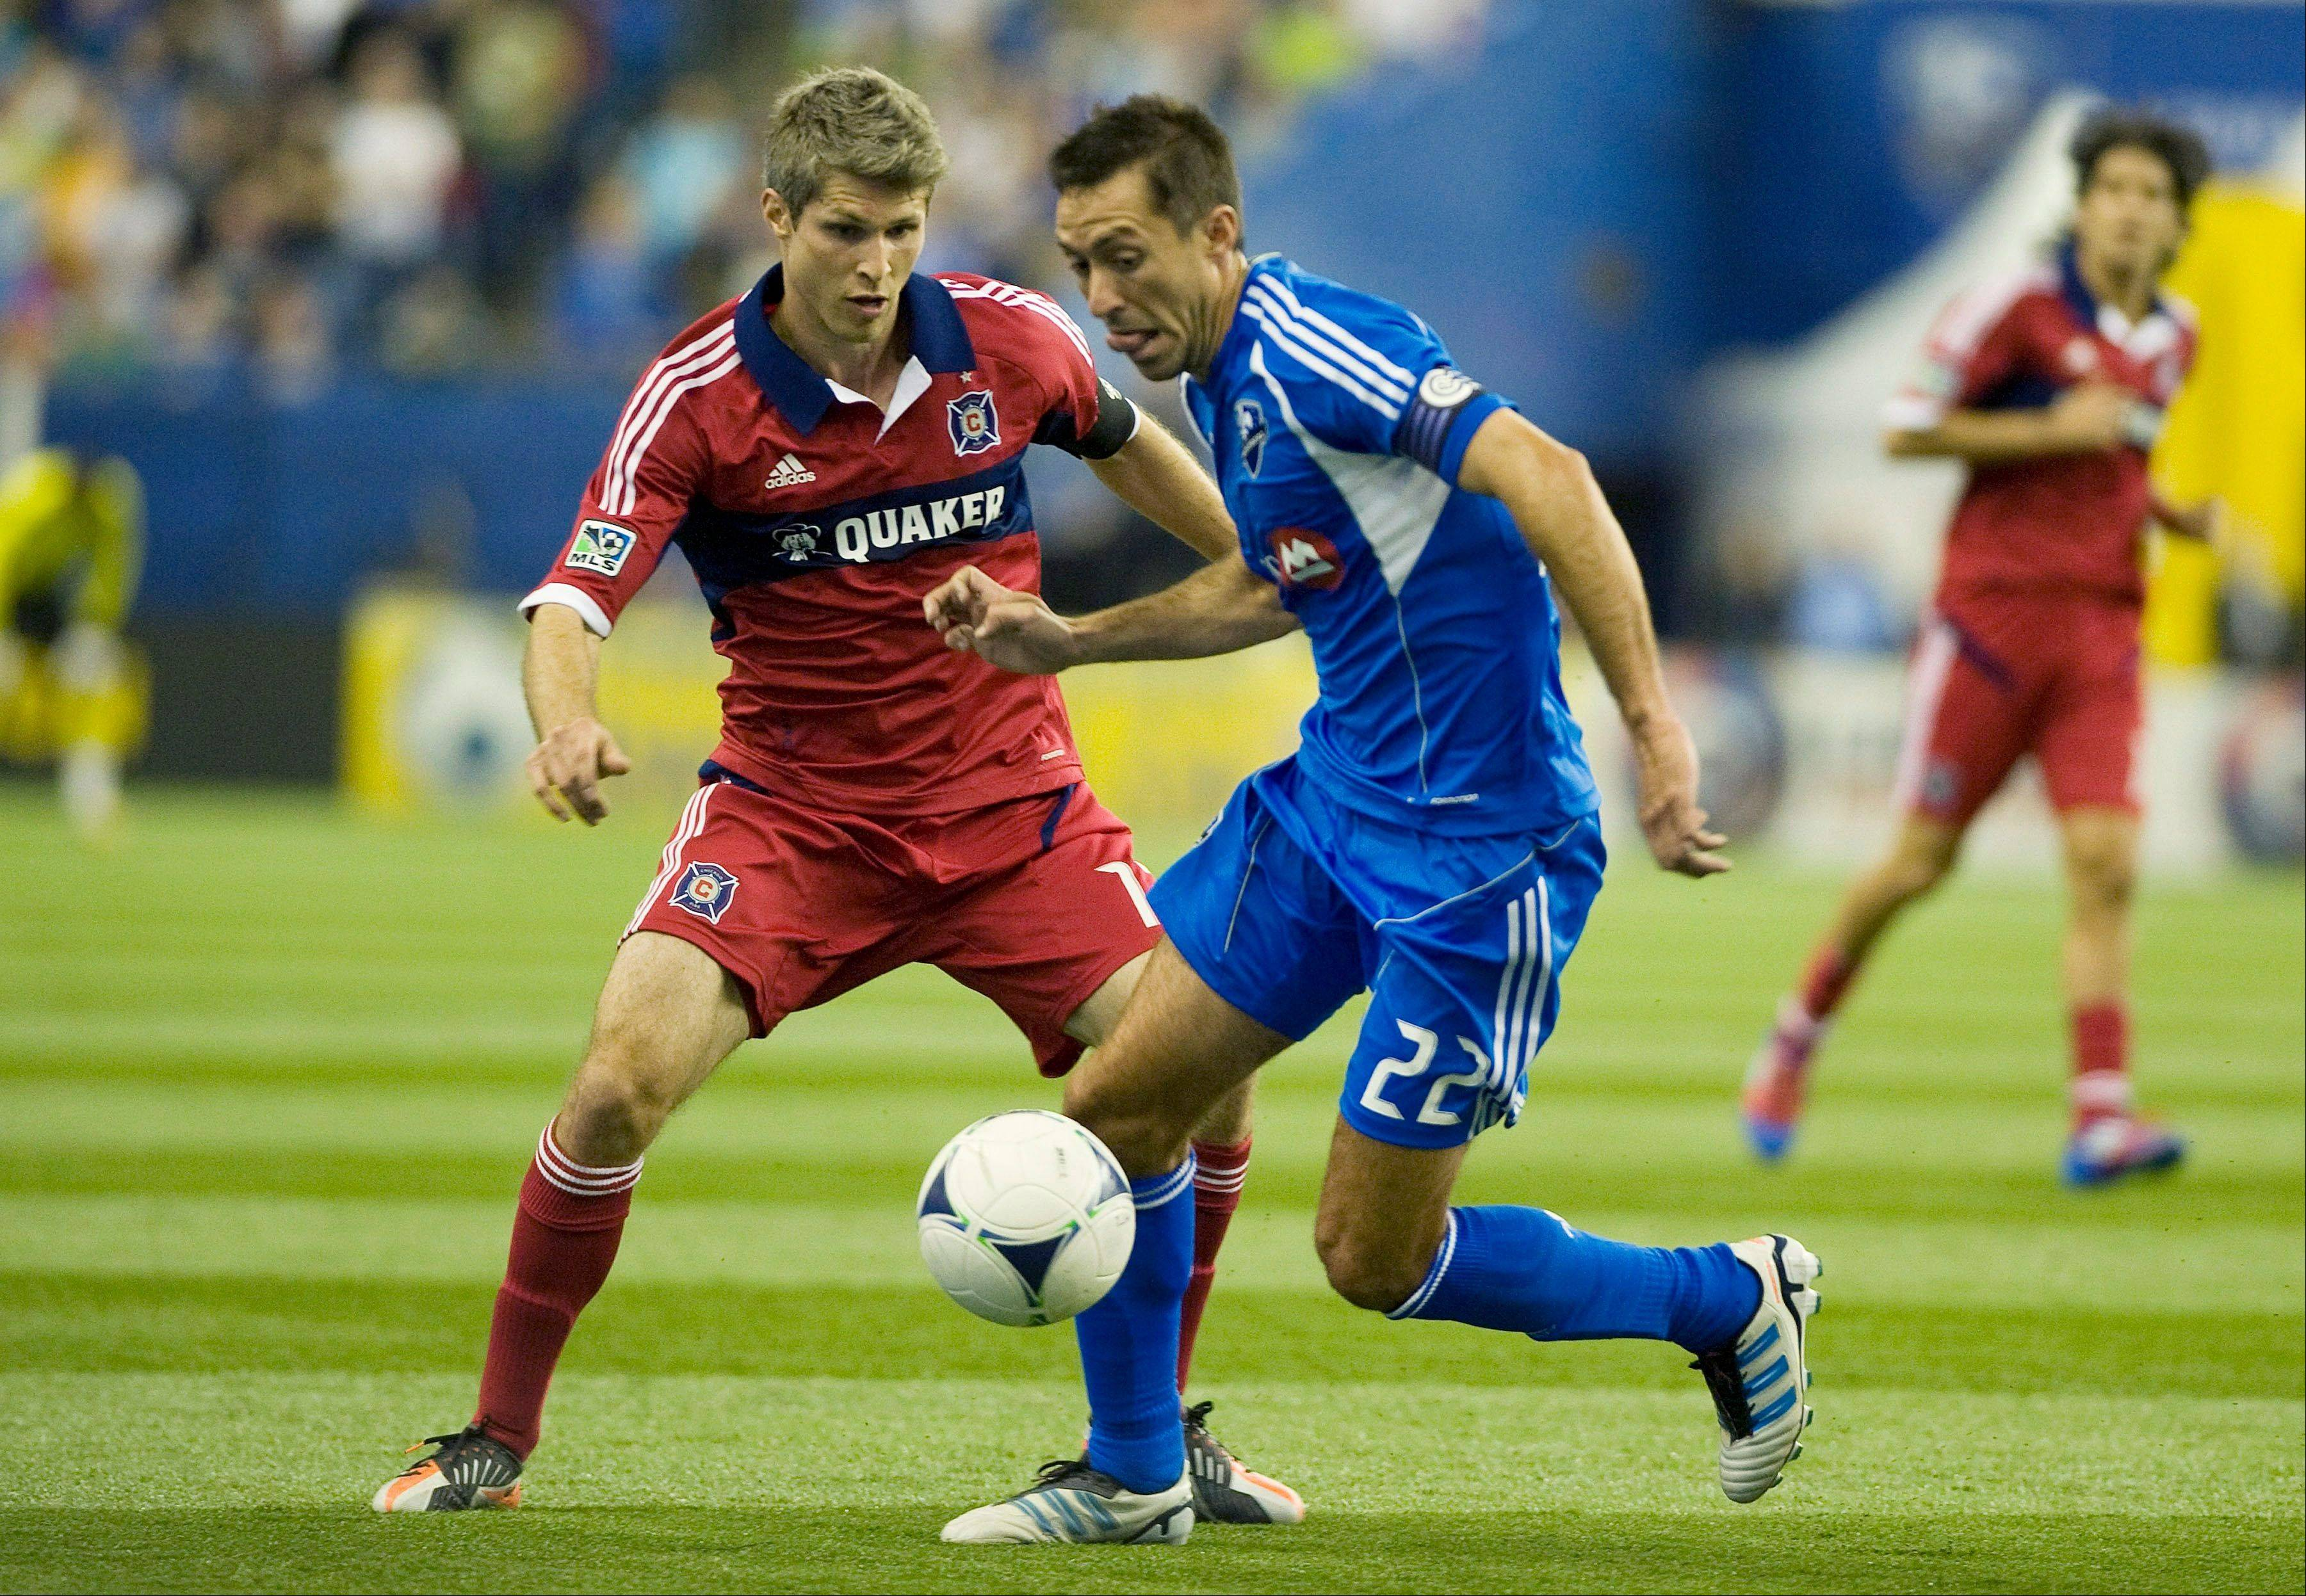 Logan Pause's role for the Chicago Fire this season has not been determined by coach Frank Klopas.